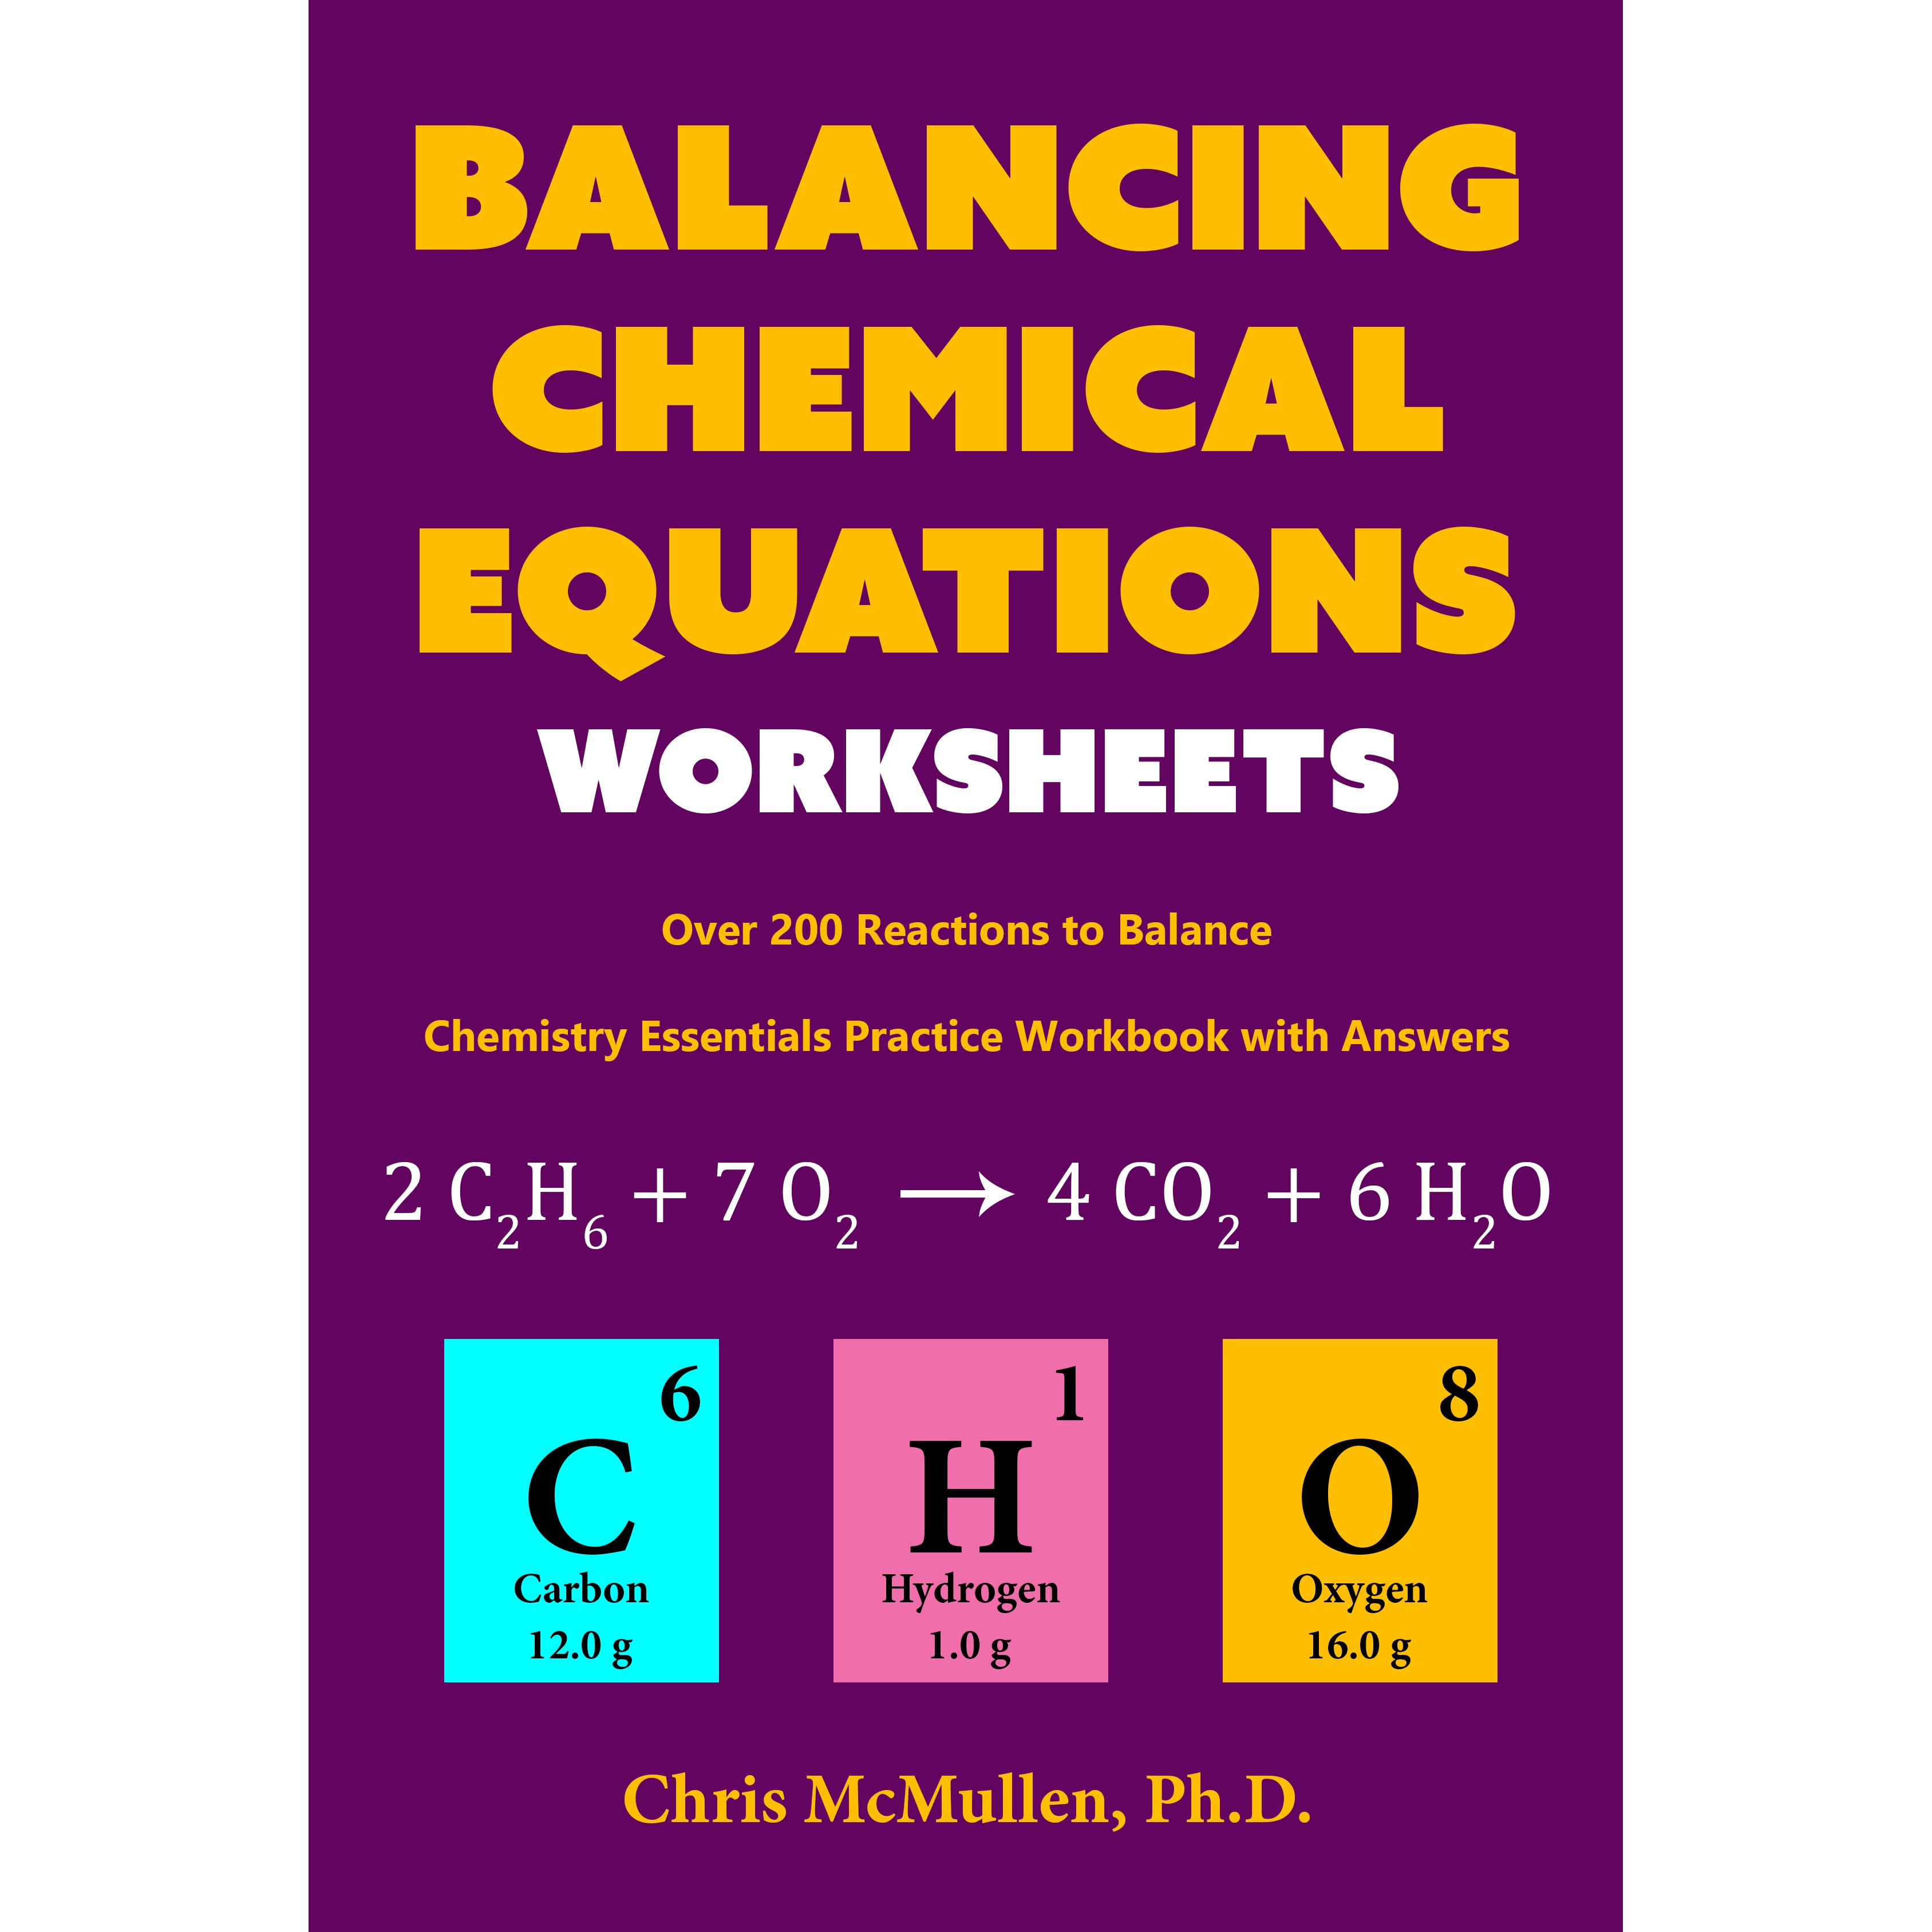 Book Giveaway For Balancing Chemical Equations Worksheets